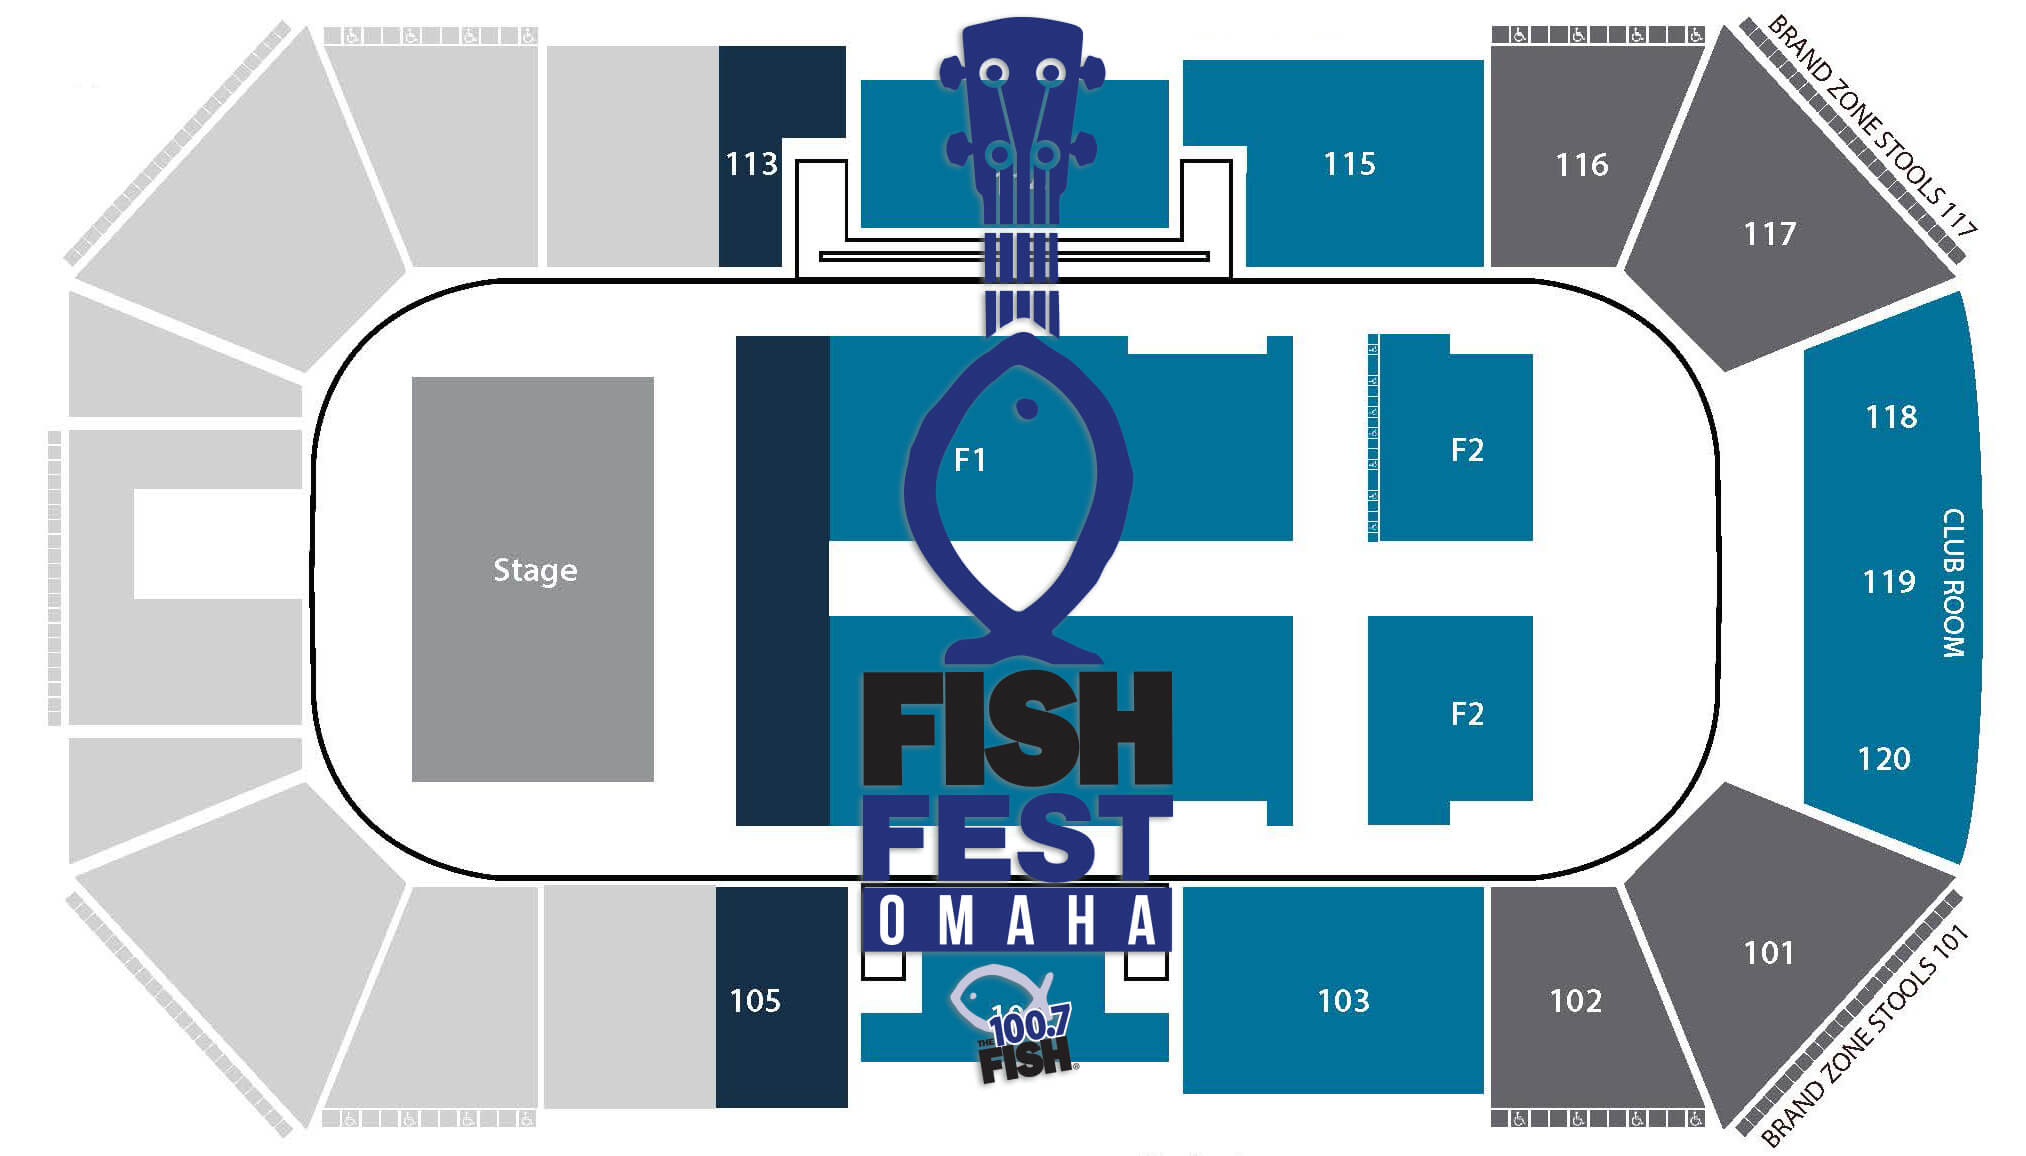 FishFest Omaha 2015 Seating chart